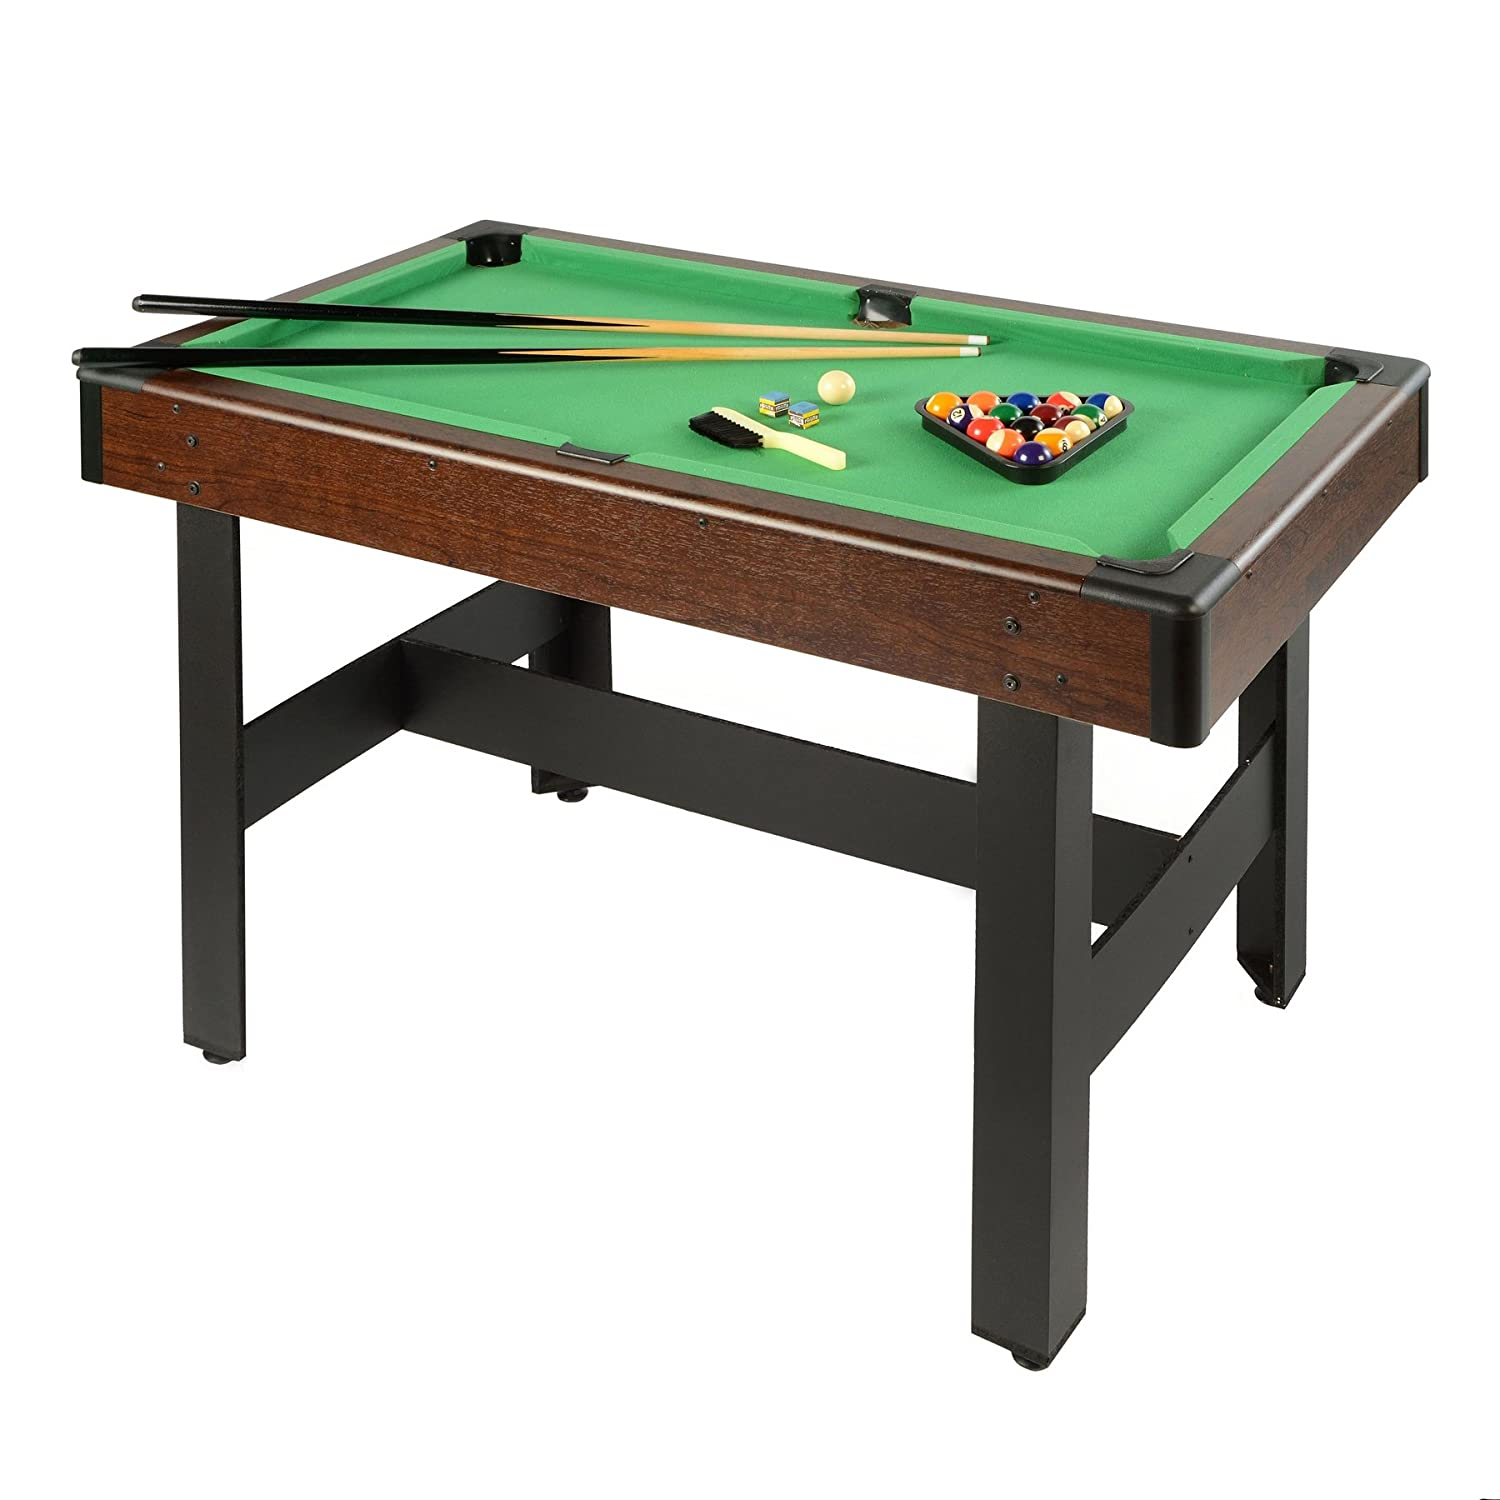 top wid crestmont billiard qlt barrington hei table p tennis w prod